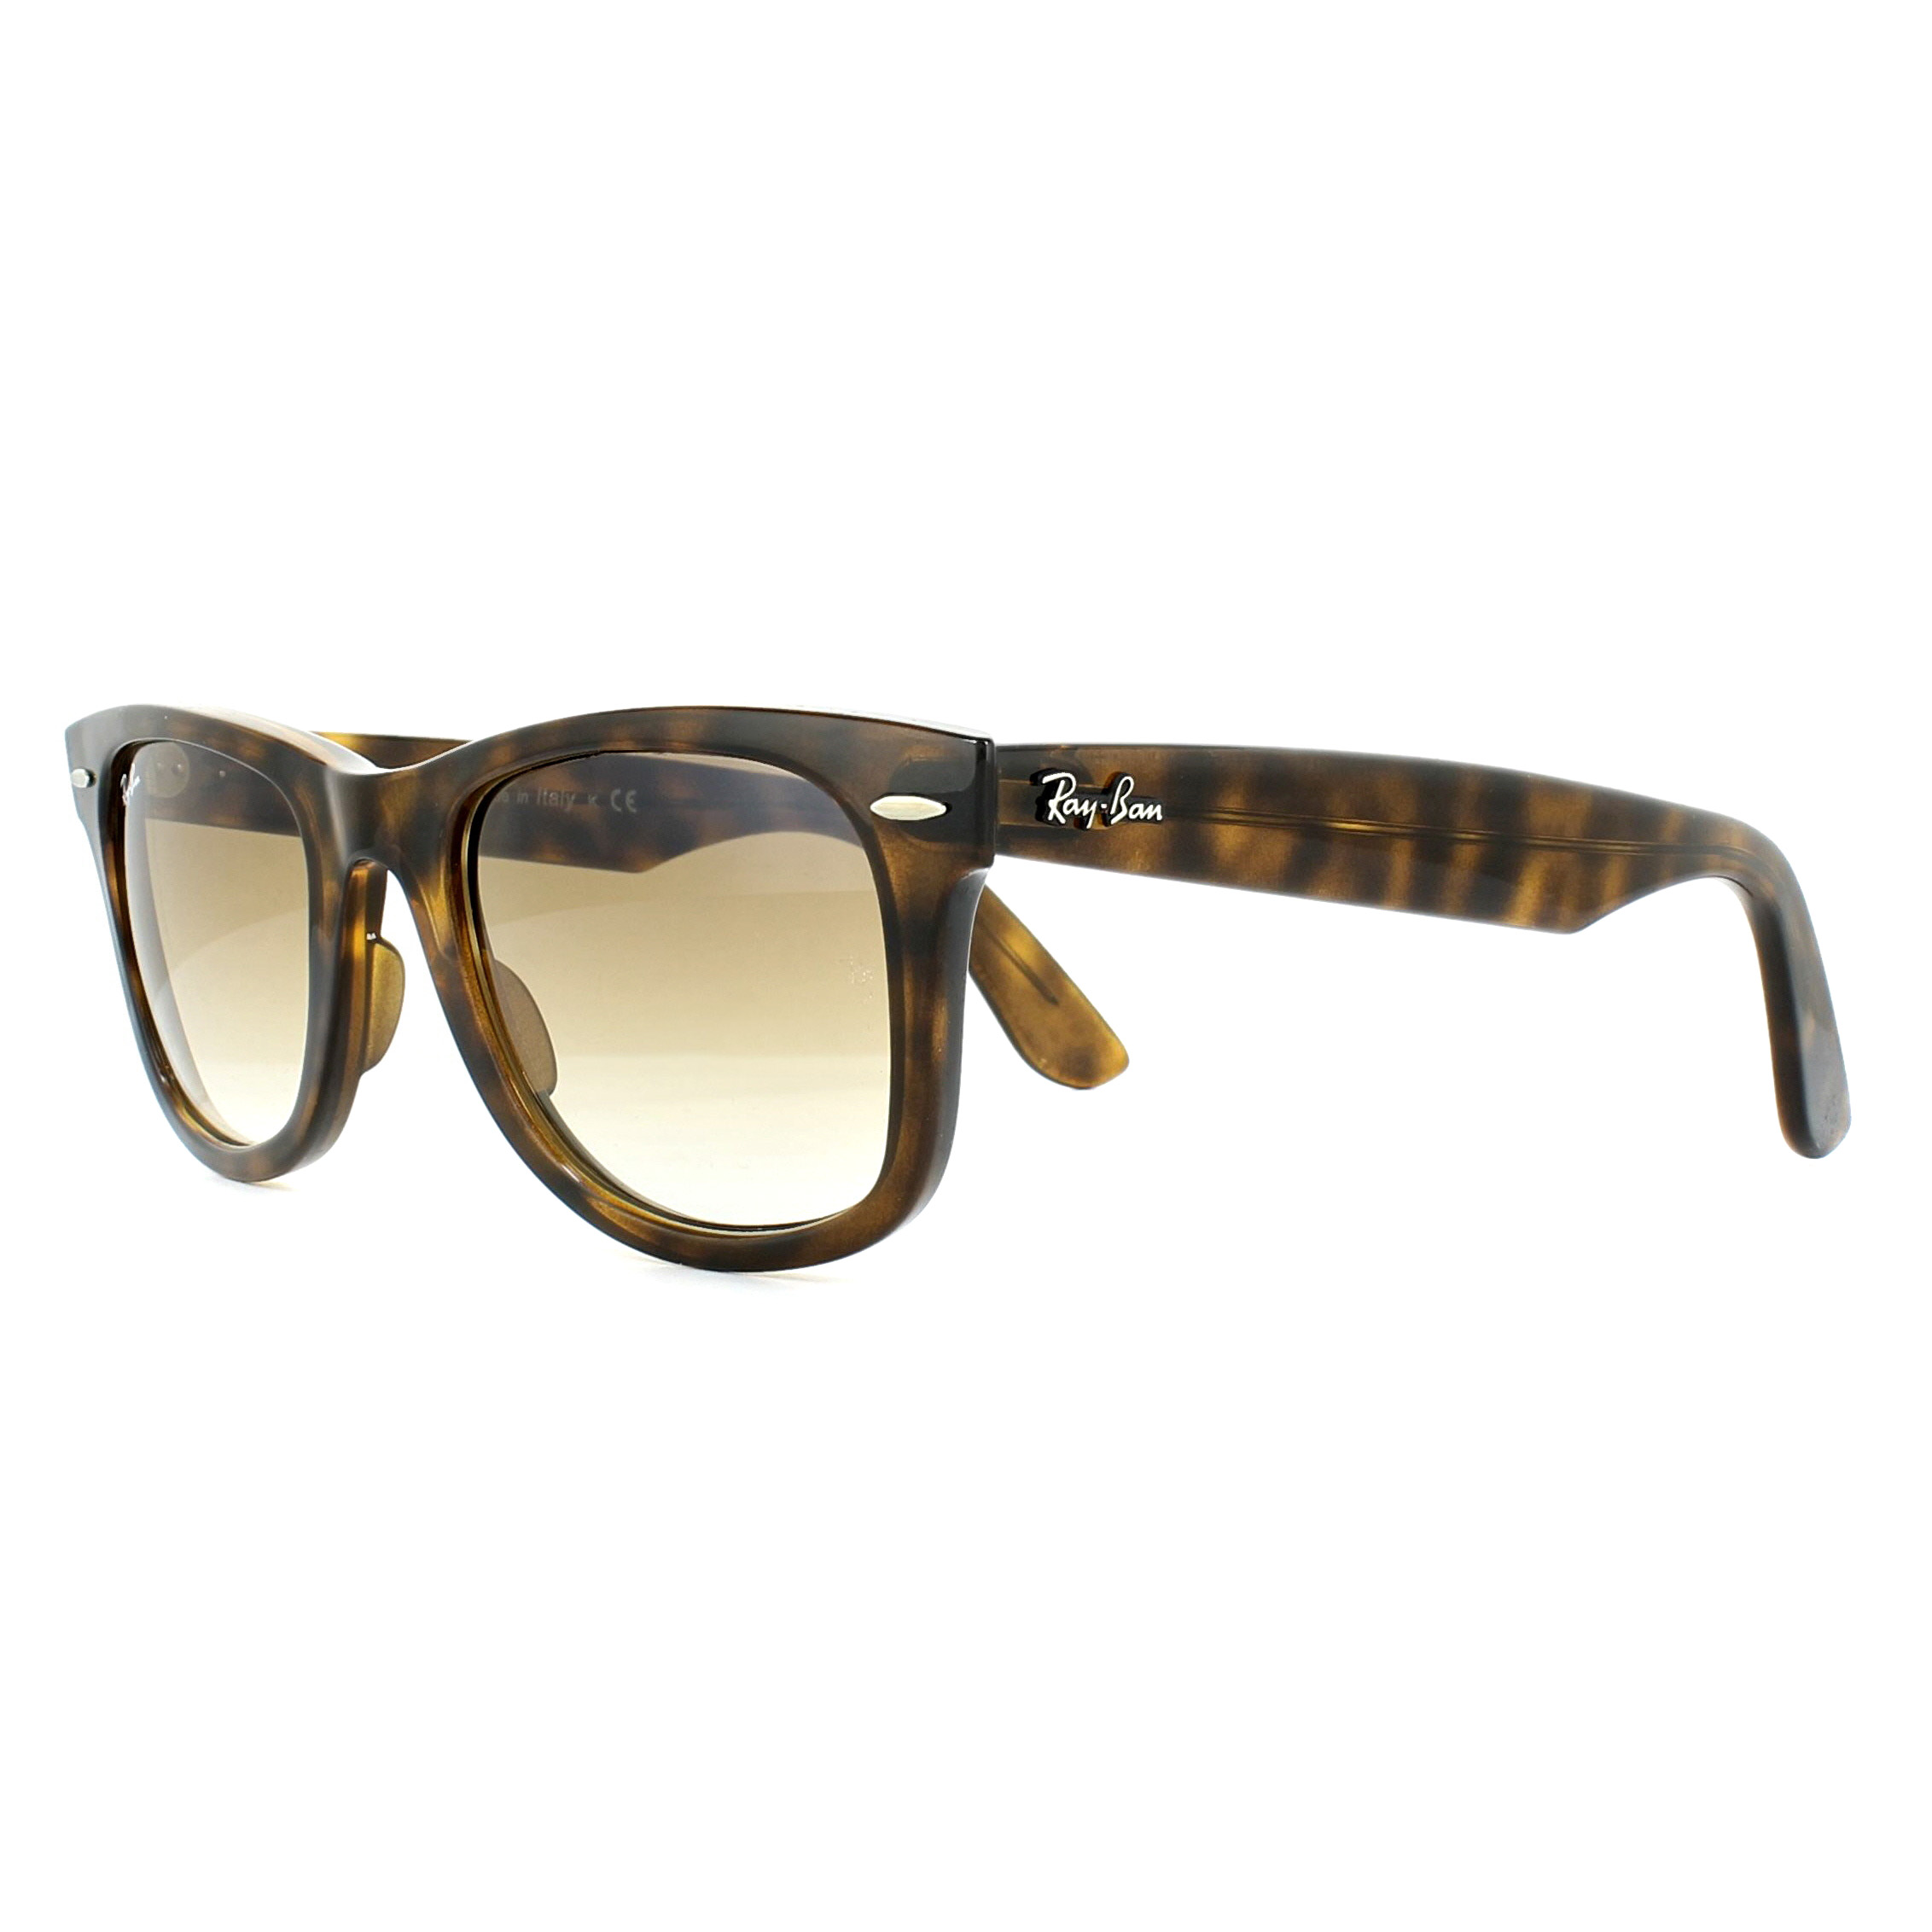 931bdce190686 Sentinel Ray-Ban Sunglasses Wayfarer Ease RB4340 710 51 Tortoise Light Brown  Gradient